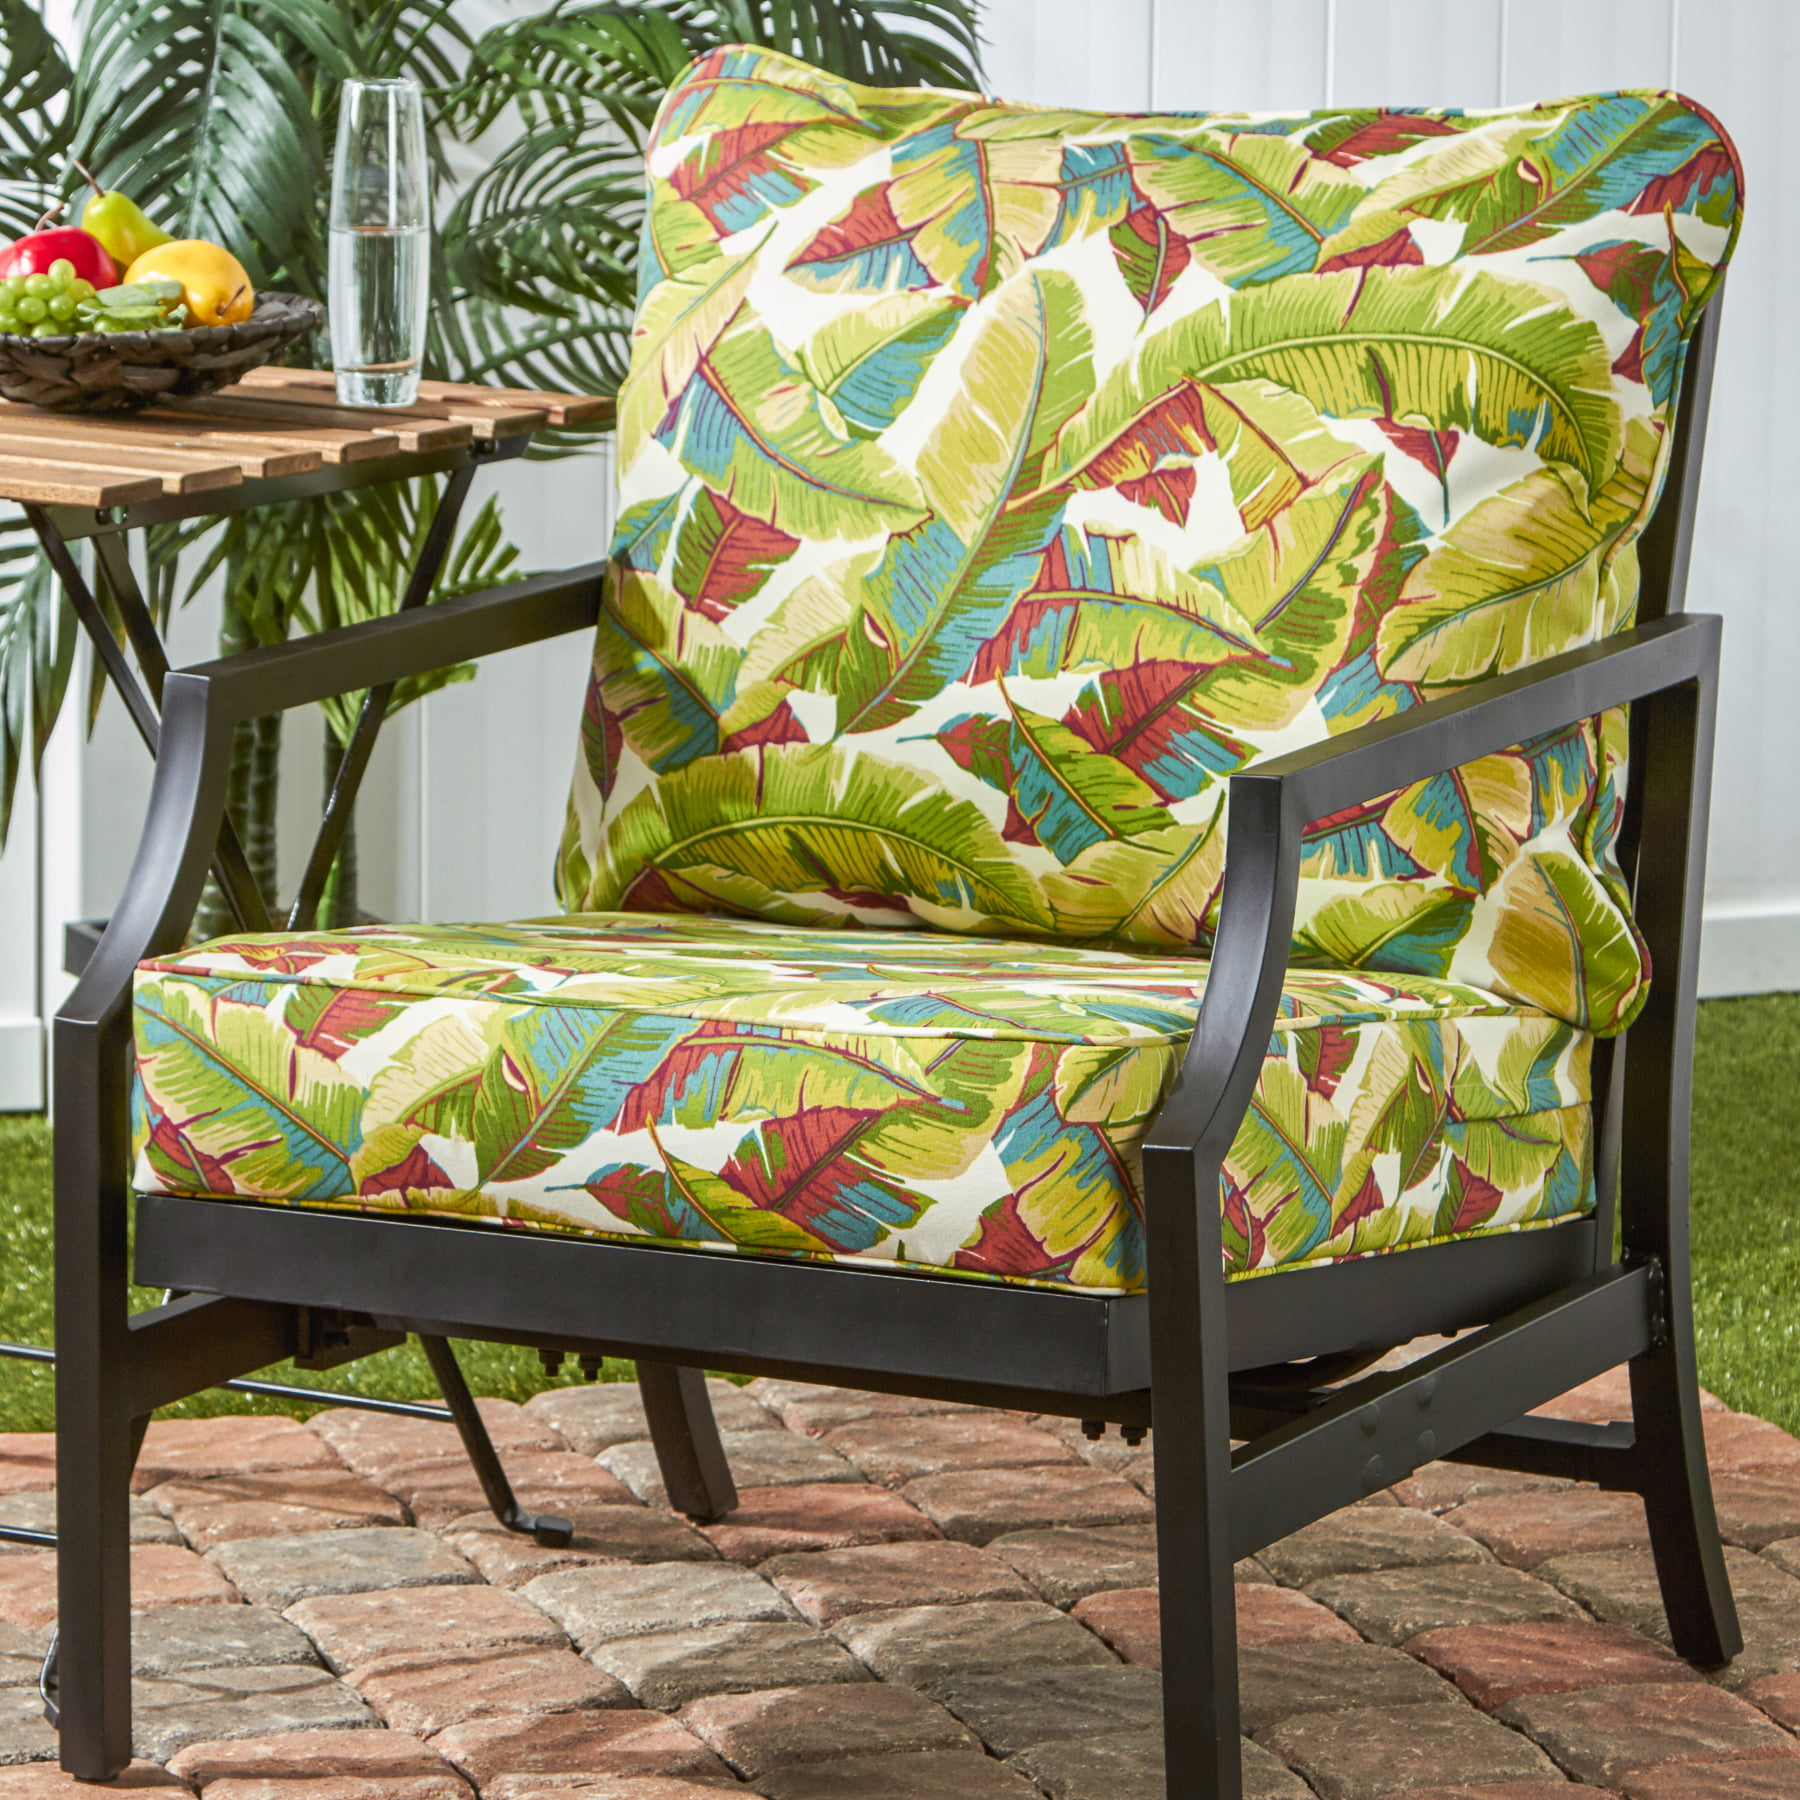 Greendale Home Fashions Palm Leaves Outdoor Deep Seat Cushion Set by Greendale Home Fashions